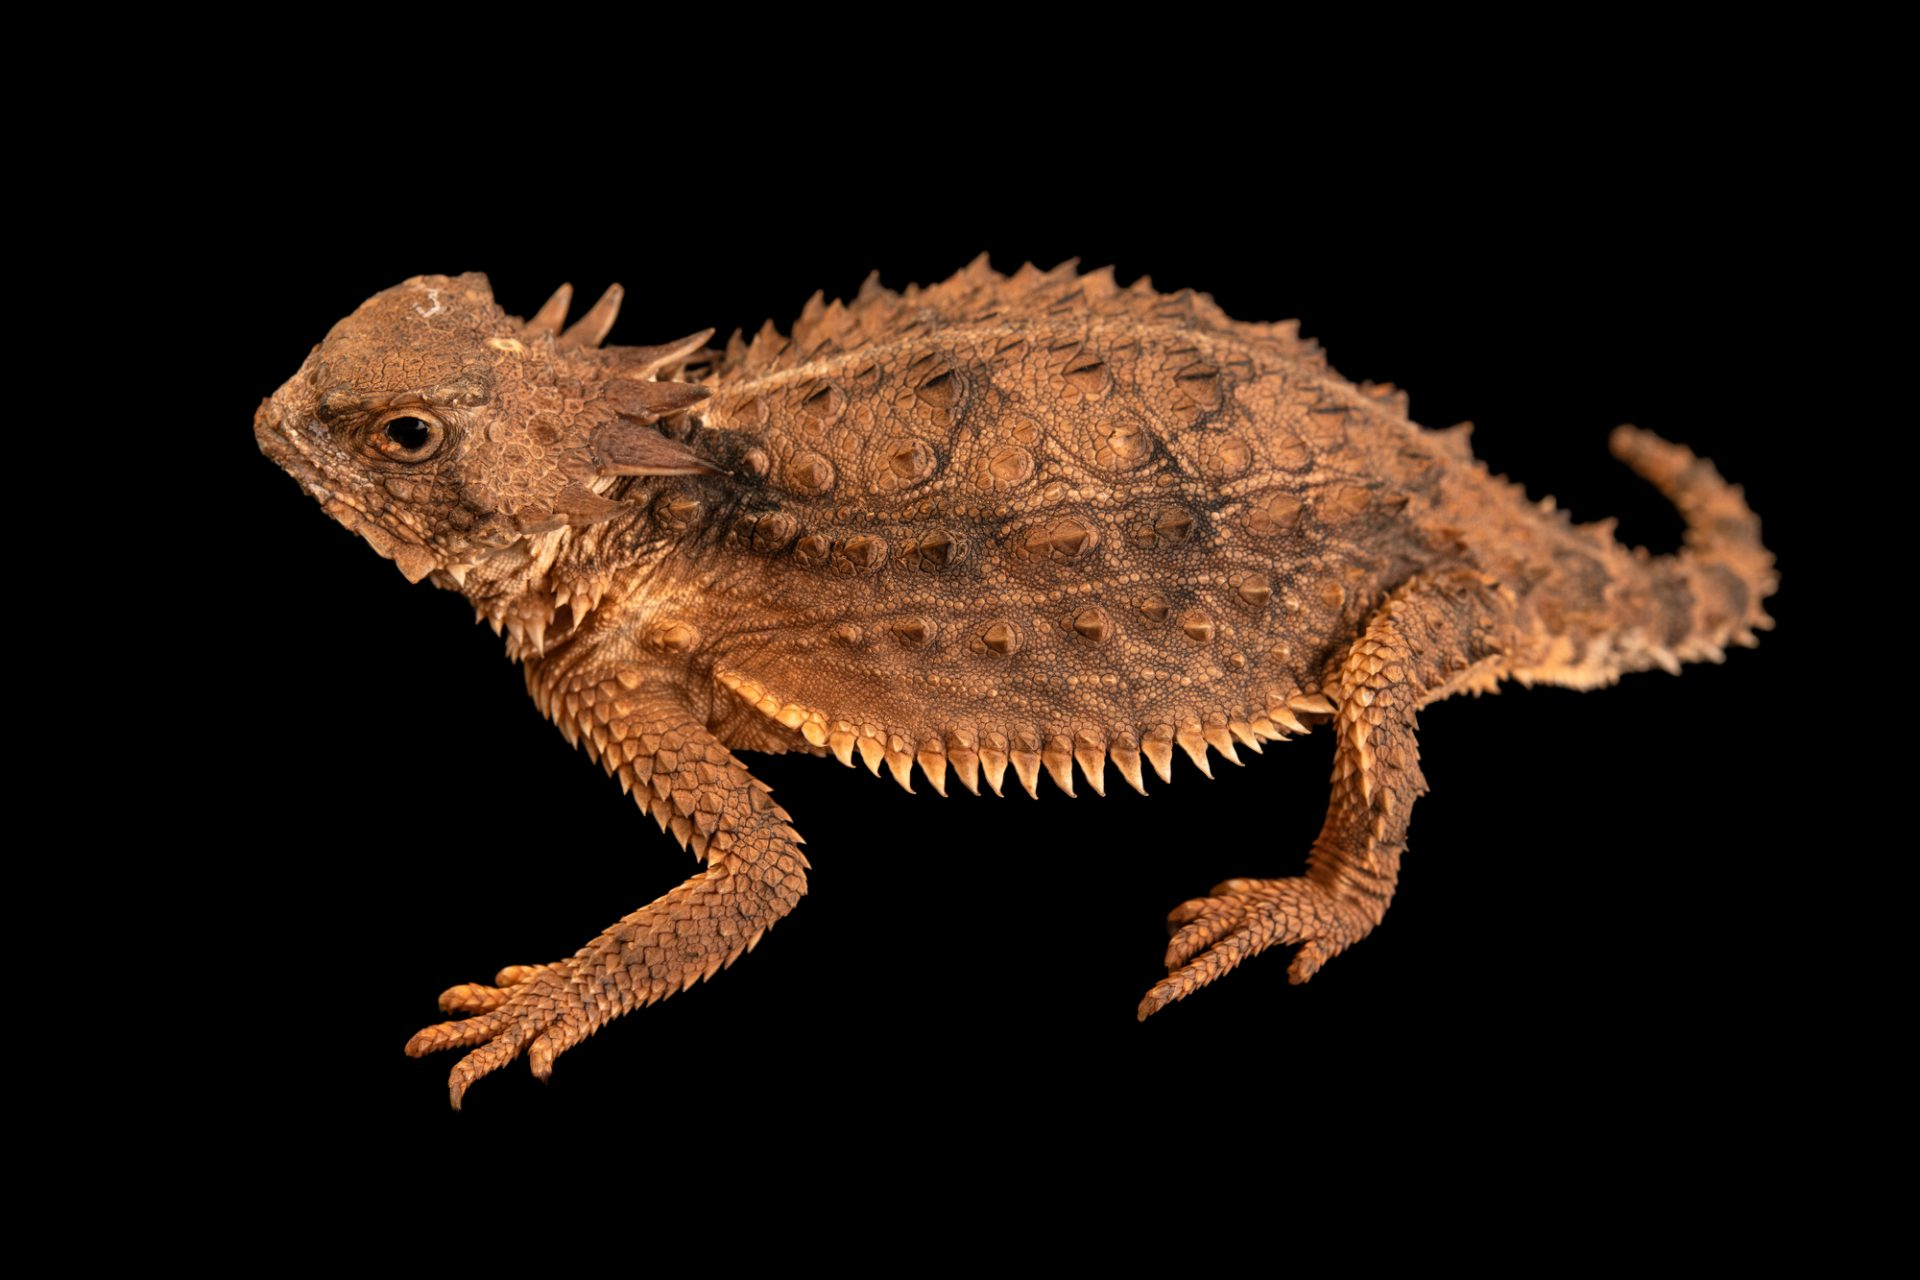 Photo: Regal horned lizard (Phrynosoma solare) at the Singapore Zoo.